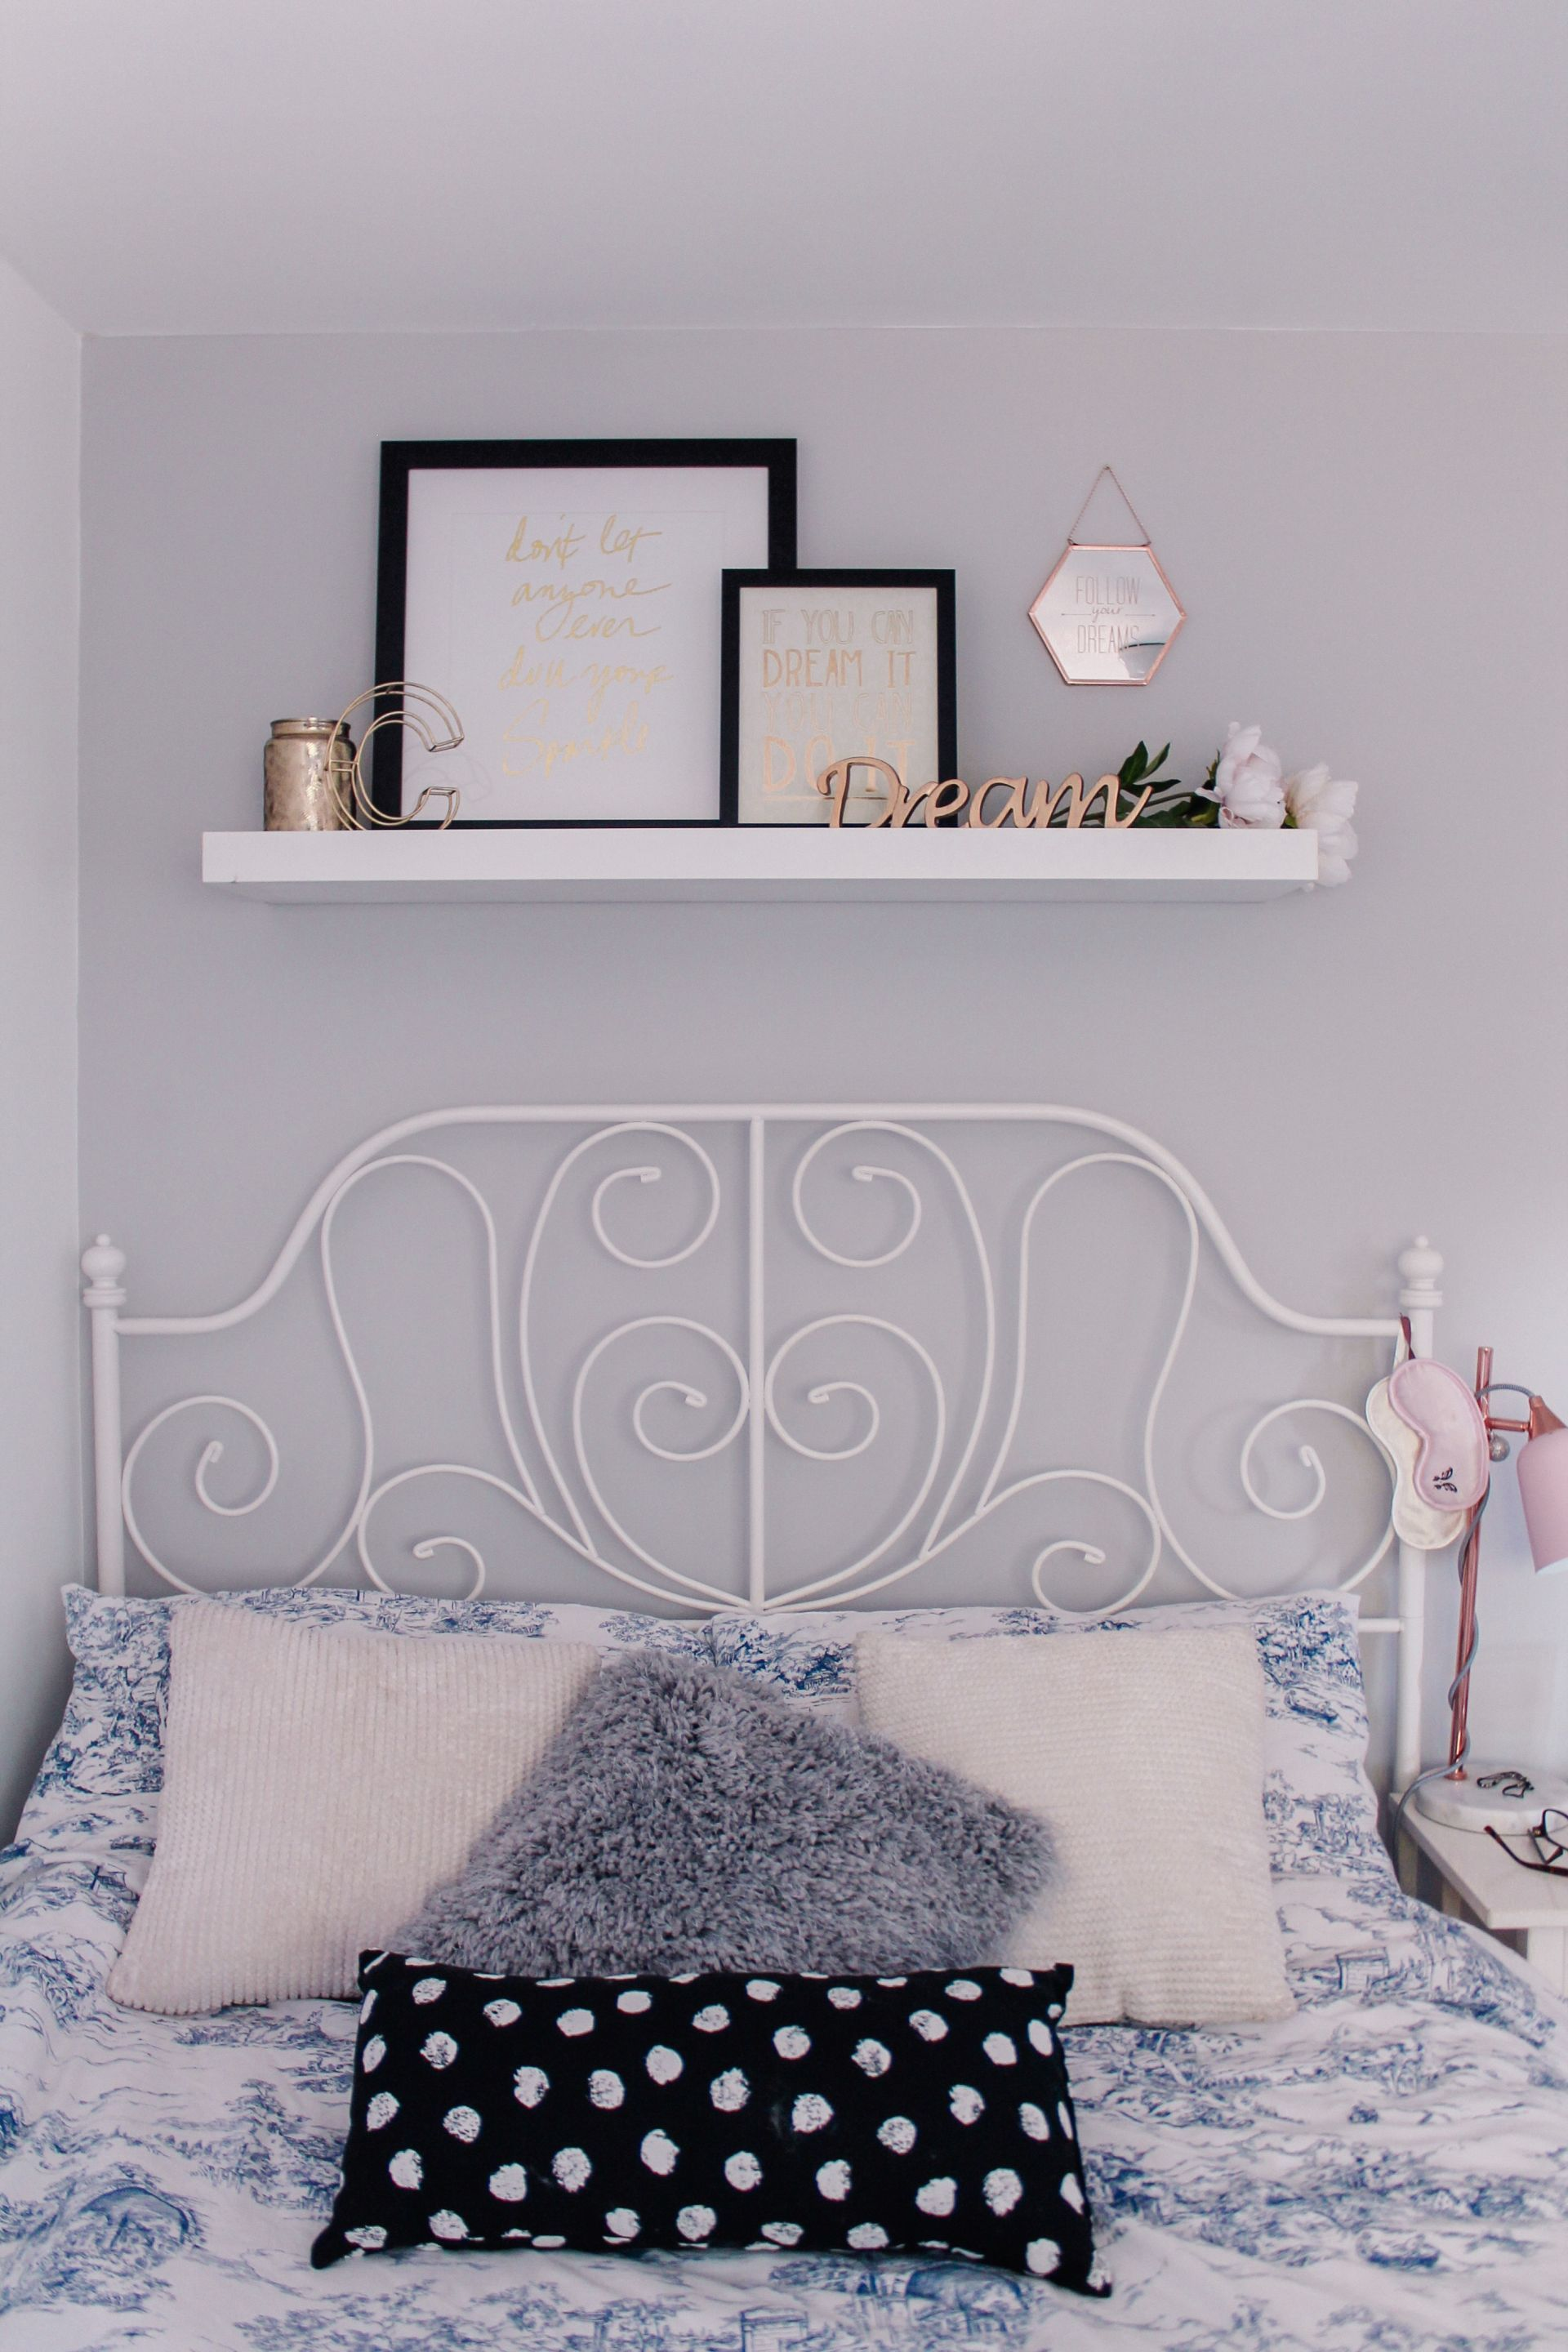 Styling Over Bed Shelving – Style and Splurging